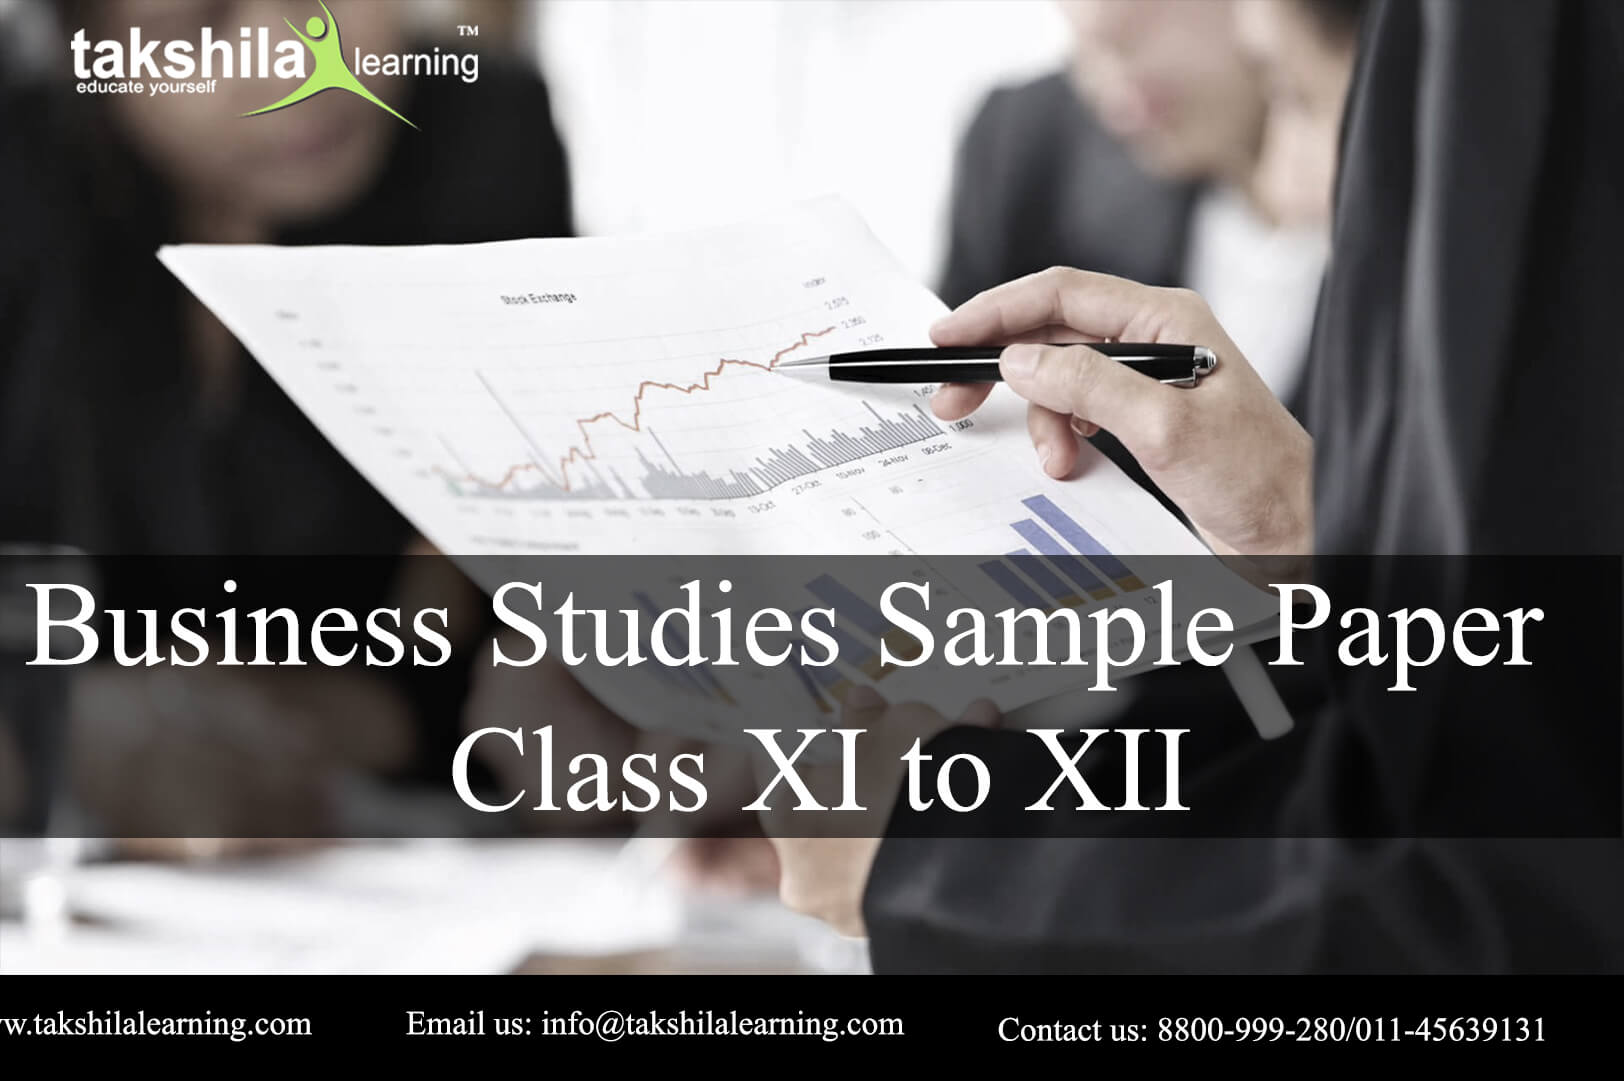 business studies sample papers cbse previous year question cbse business studies sample papers previous year question papers